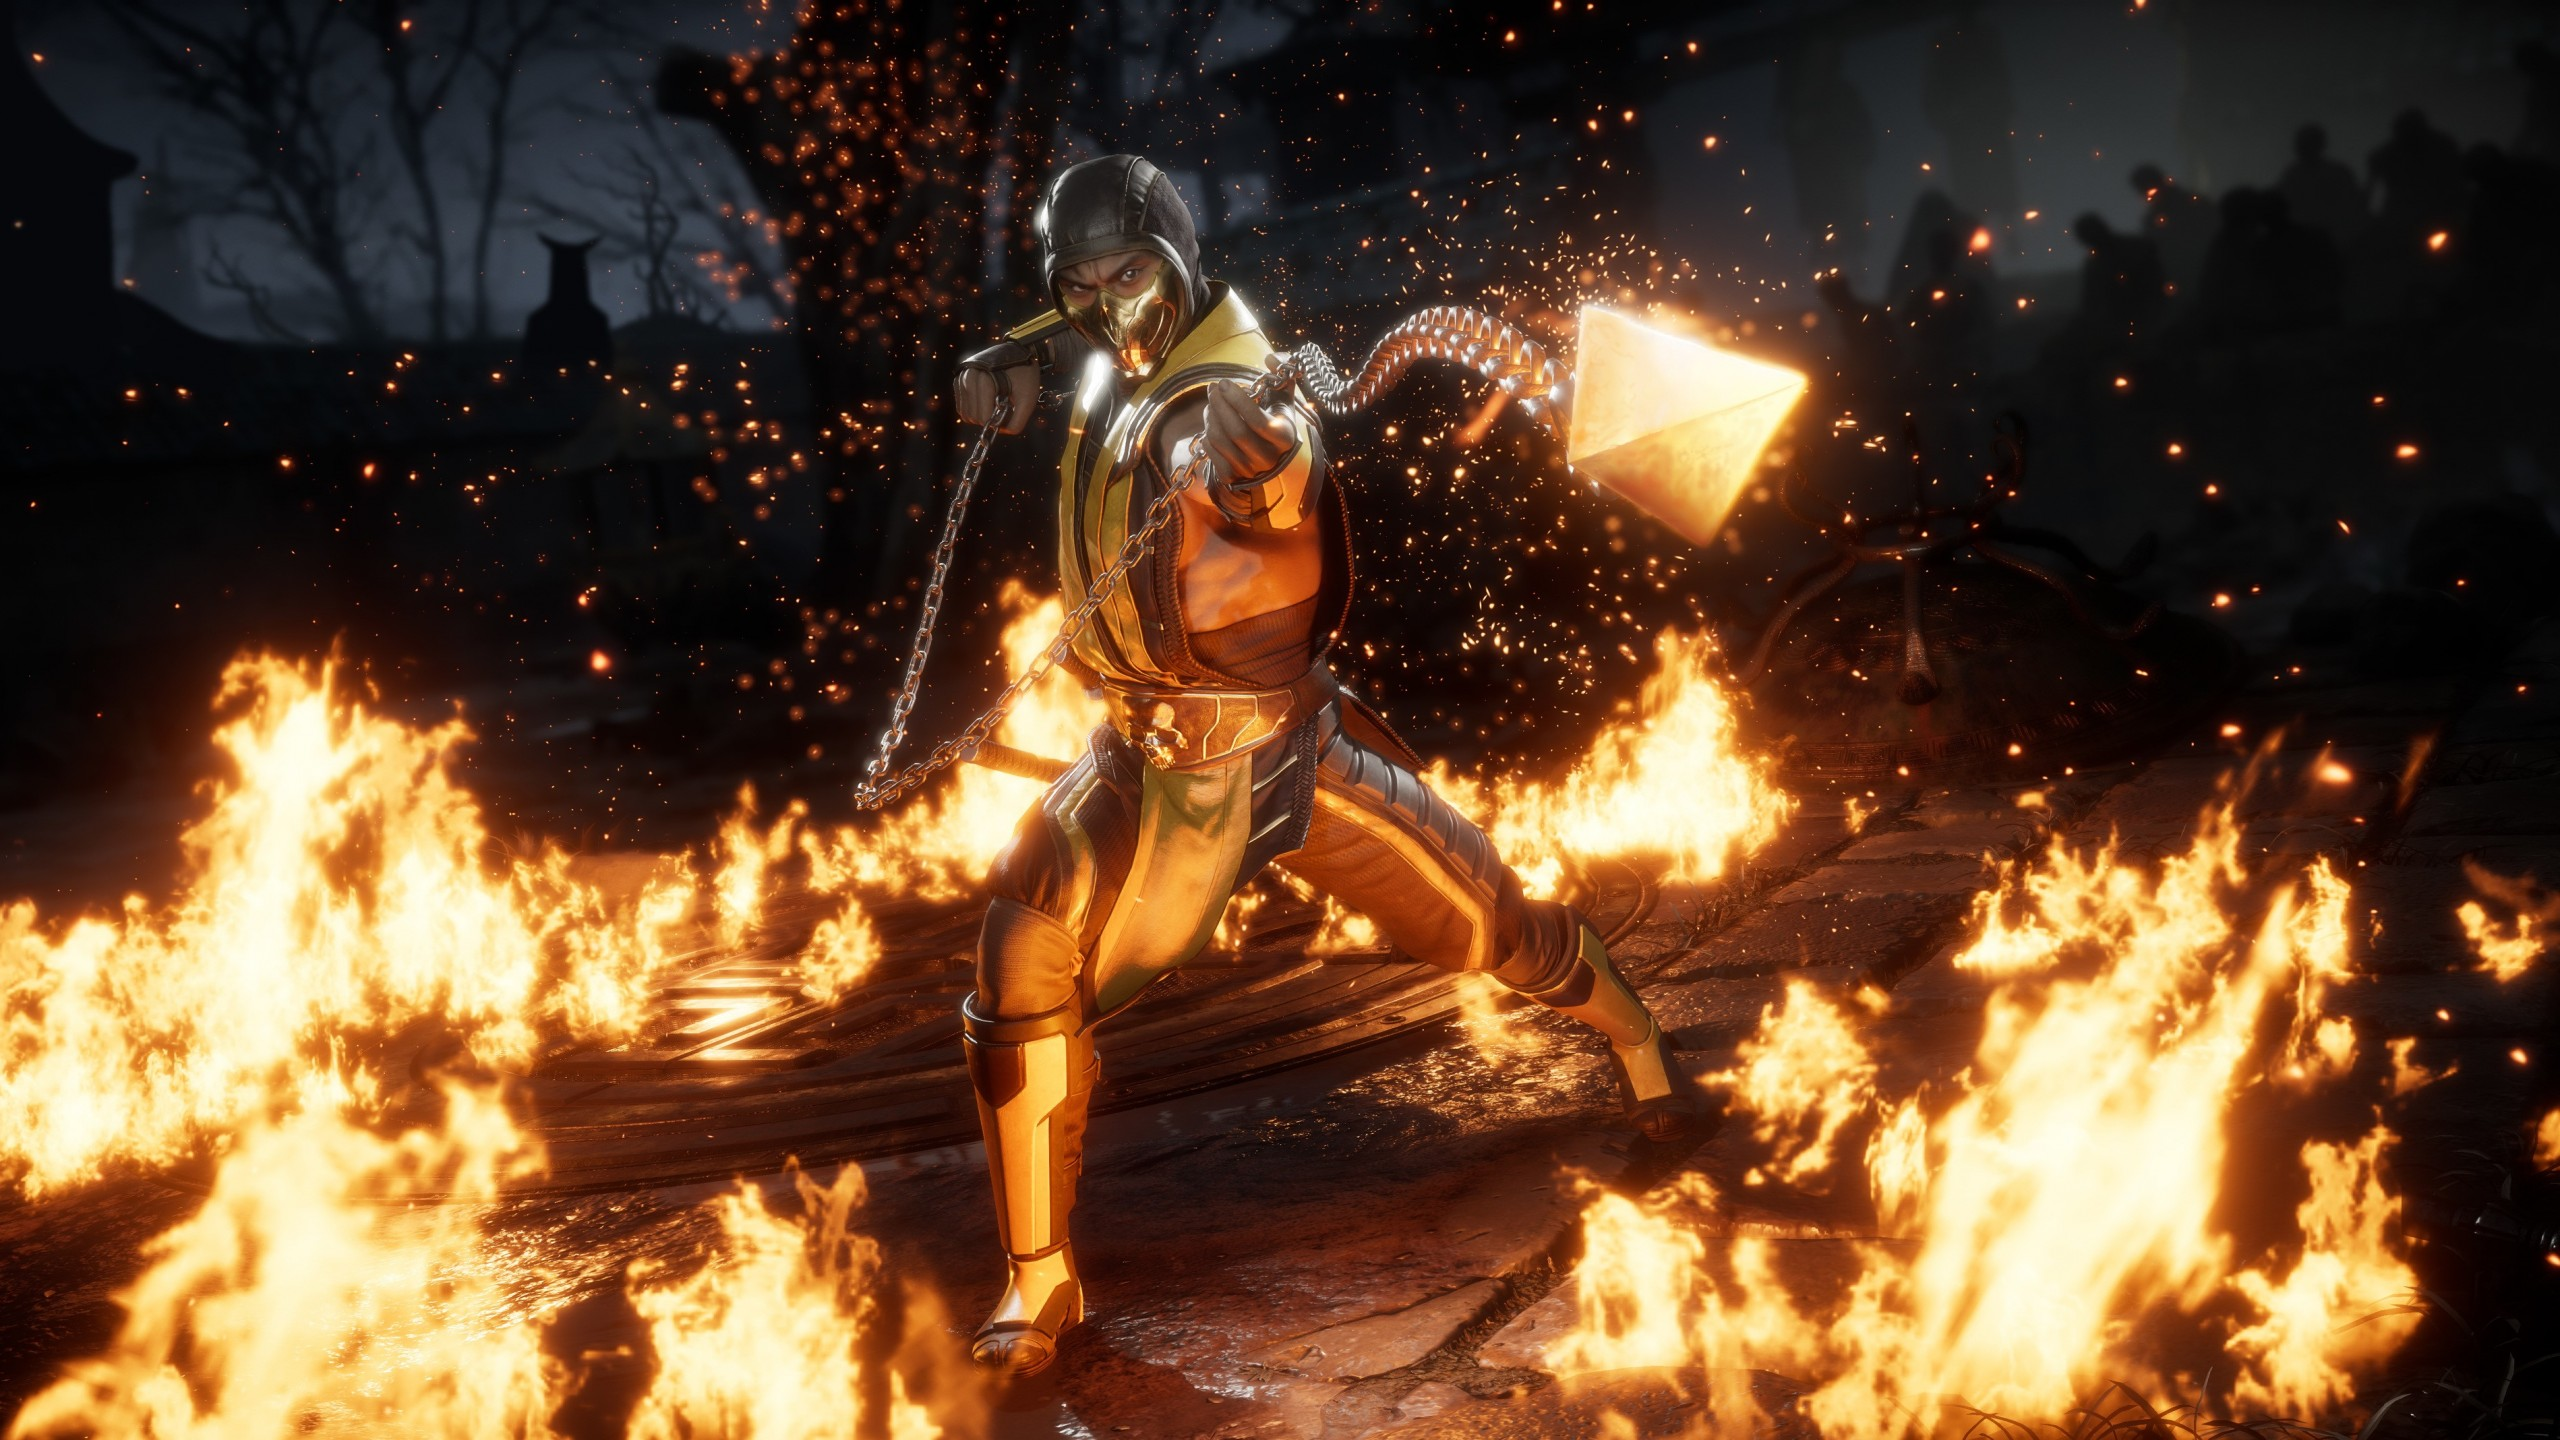 Wallpaper Mortal Kombat 11 Screenshot 4k Games 21014